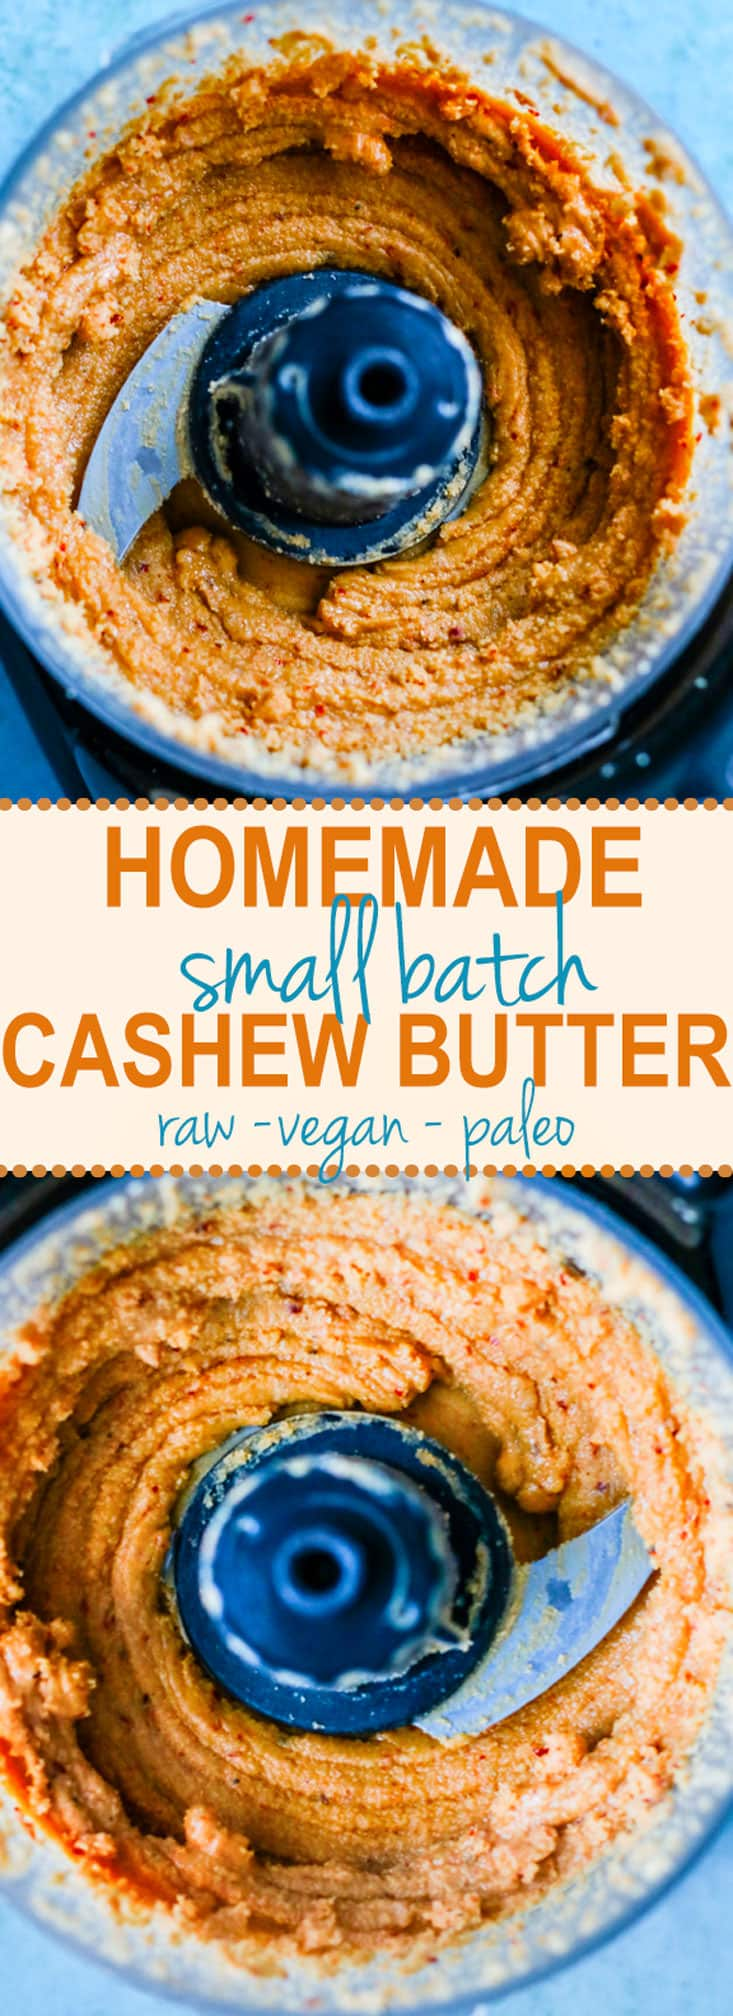 small batch of homemade raw cashew butter. So simple to make for those quick fix cravings or for sauces, snacks, etc. Paleo and vegan!